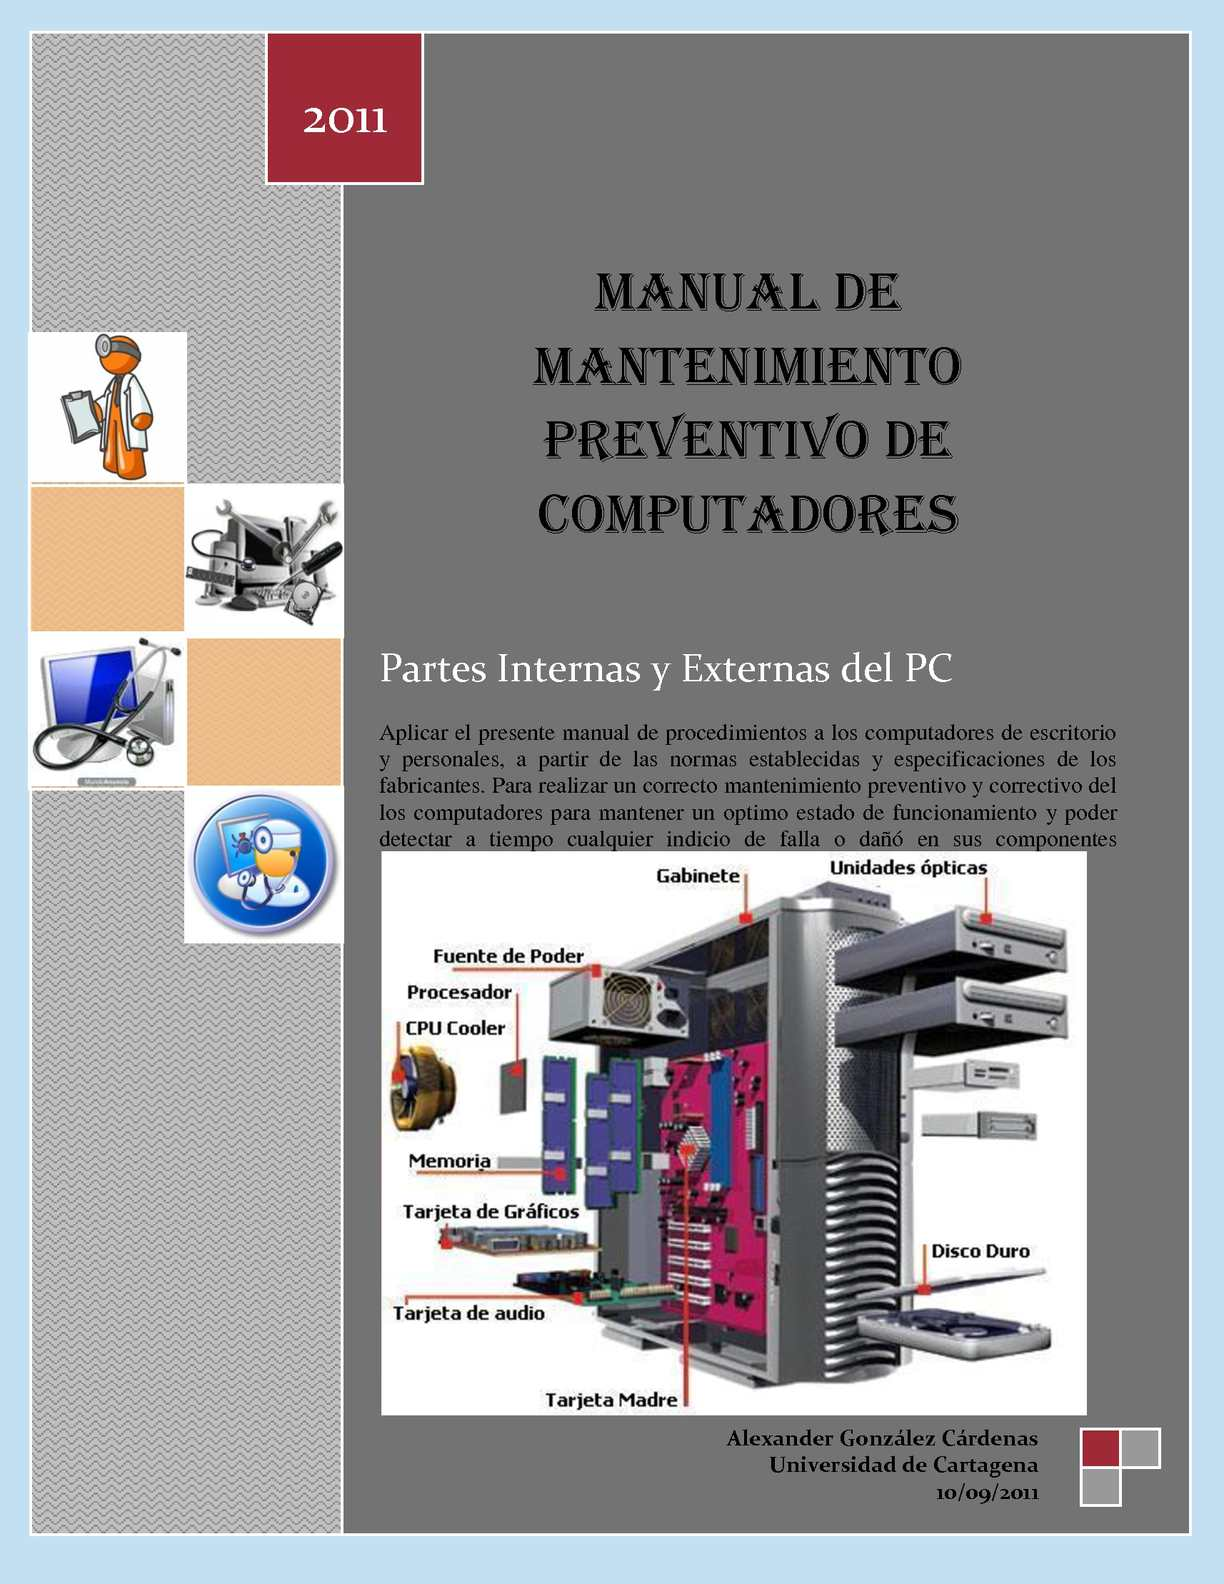 manual de mantenimiento de computadoras calameo downloader rh calameo download manual de mantenimiento de computadoras 2017 manual de mantenimiento de computadoras 2016 pdf